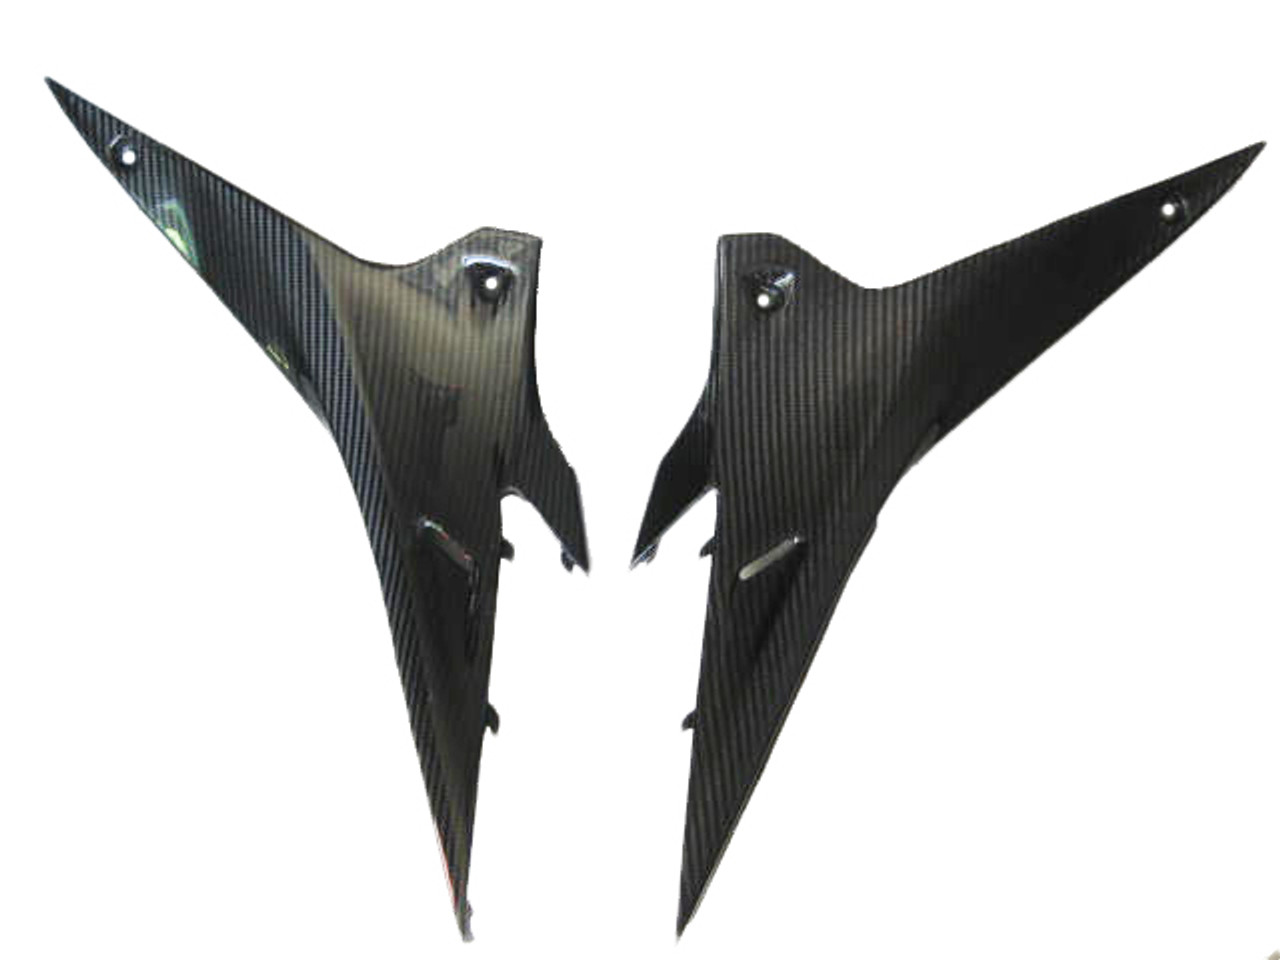 Glossy Twill Weave Carbon Fiber Under Seat Side Panels for Aprilia RSV4 2009+, Tuono V4 2011+